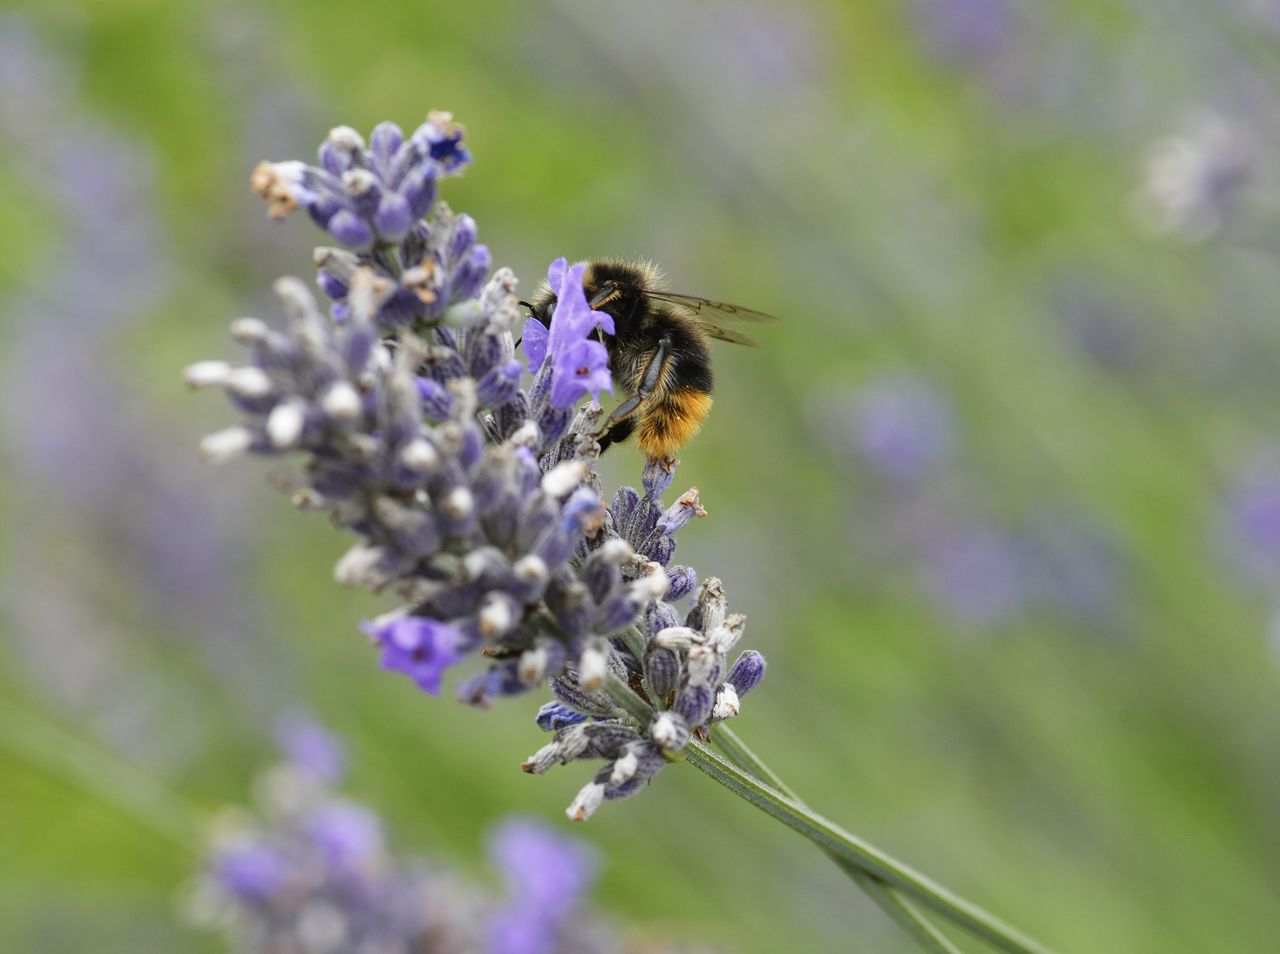 flower, flowering plant, animals in the wild, fragility, animal themes, invertebrate, one animal, insect, vulnerability, animal, animal wildlife, plant, beauty in nature, bee, growth, freshness, close-up, flower head, petal, purple, pollination, no people, lavender, bumblebee